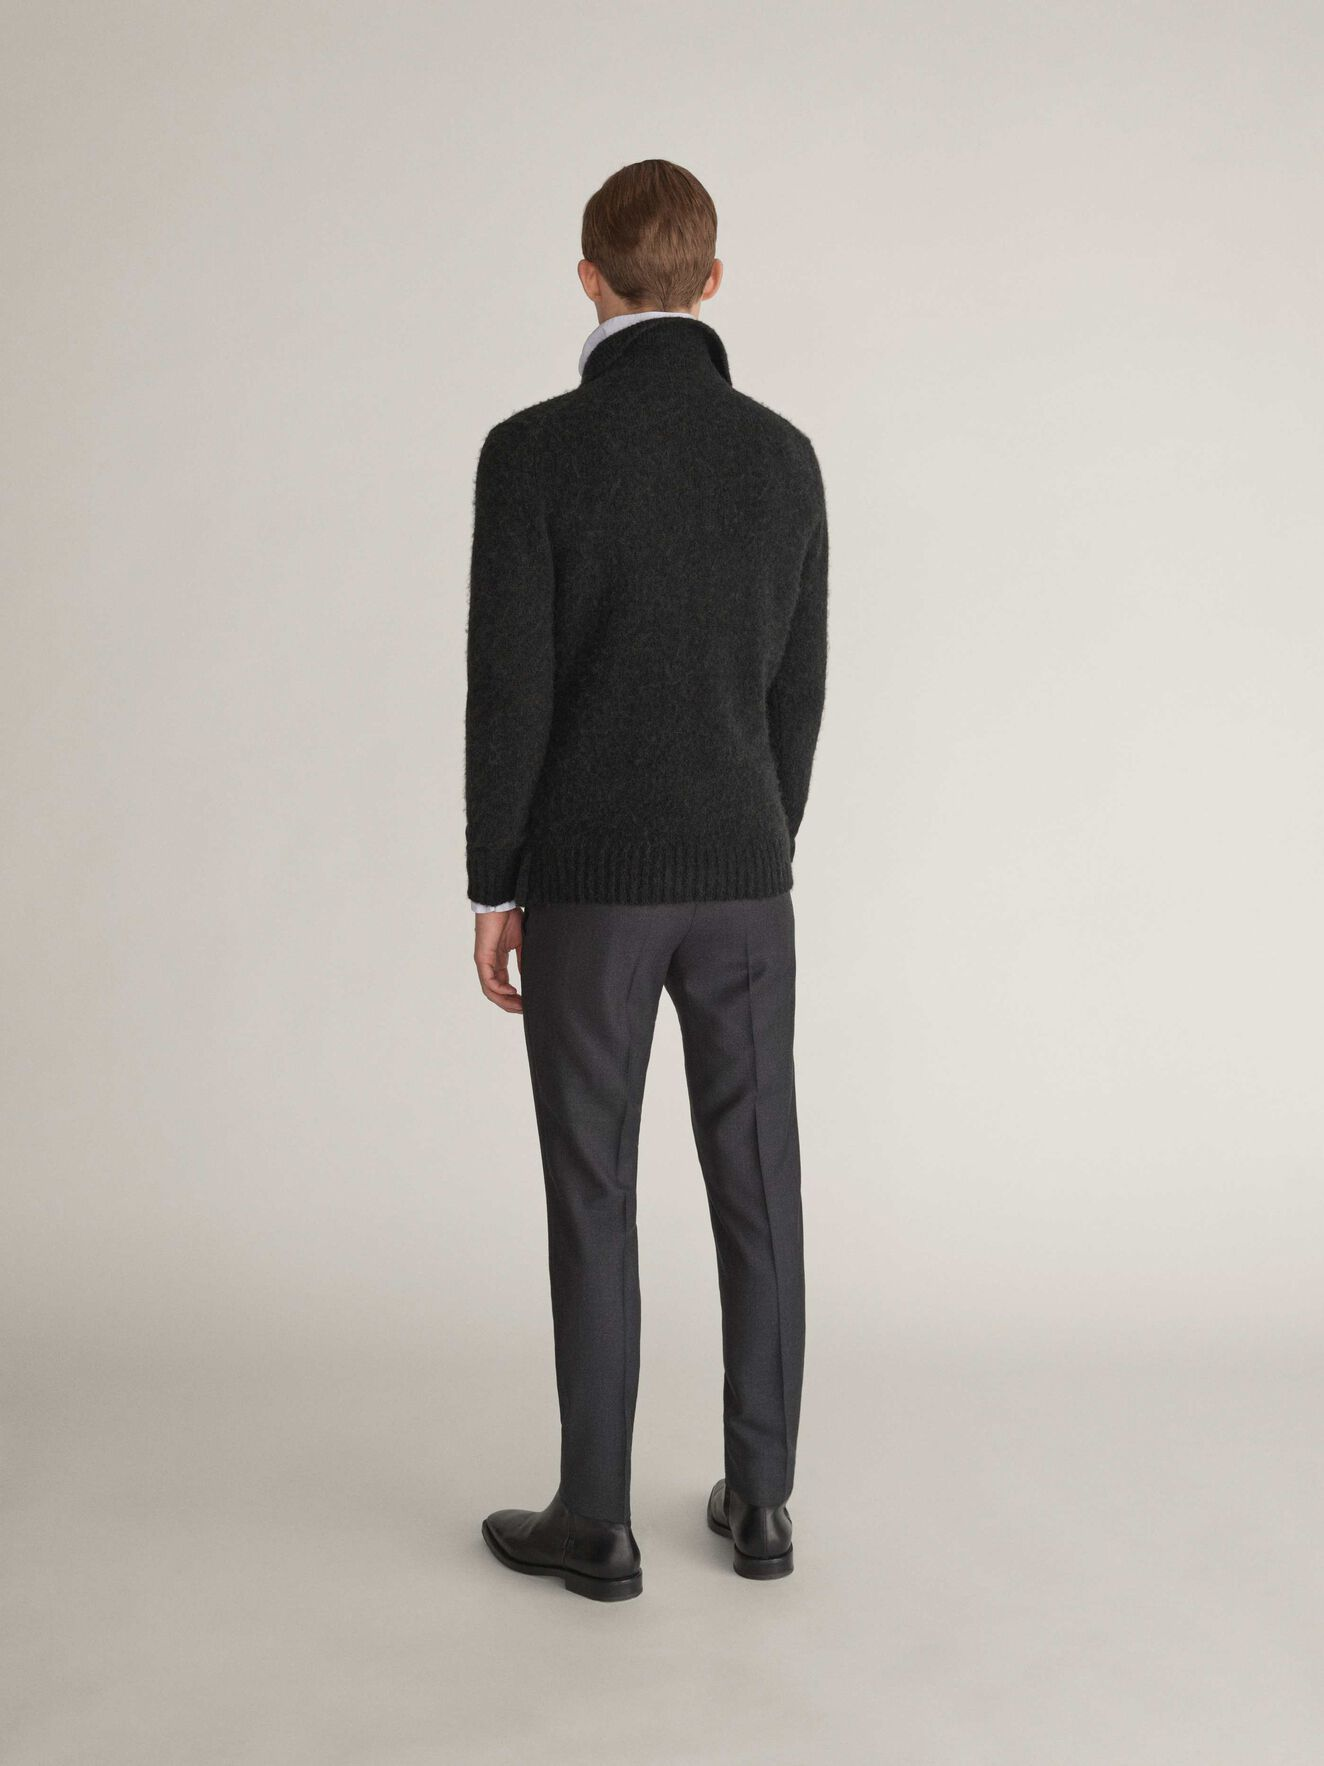 Norby Pullover in Black from Tiger of Sweden